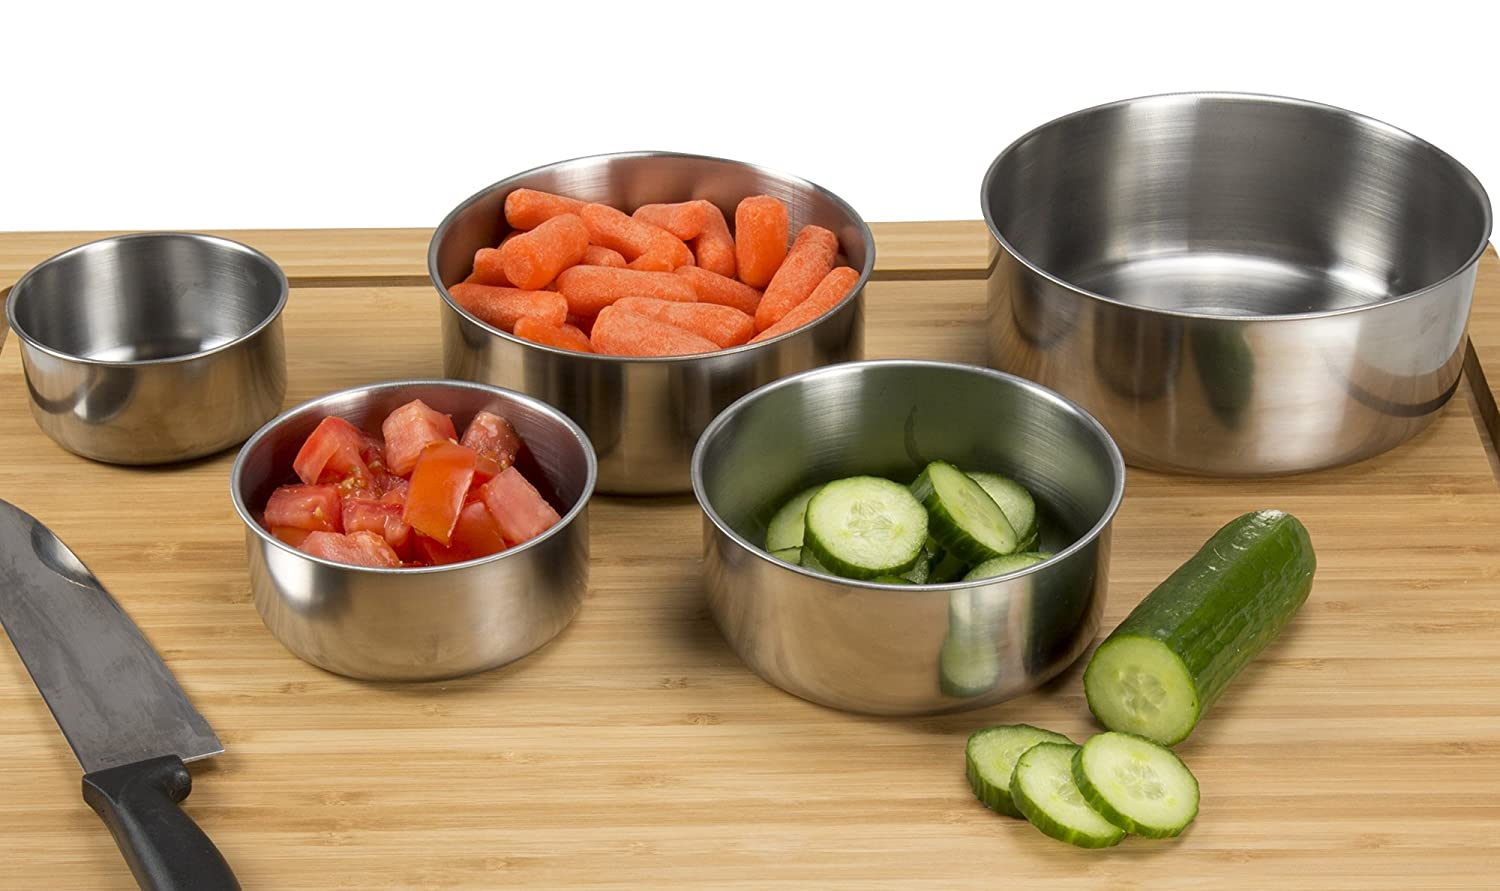 Chef Buddy 5 Piece Stainless Steel Bowl Set with Lids, Silver 82-08003